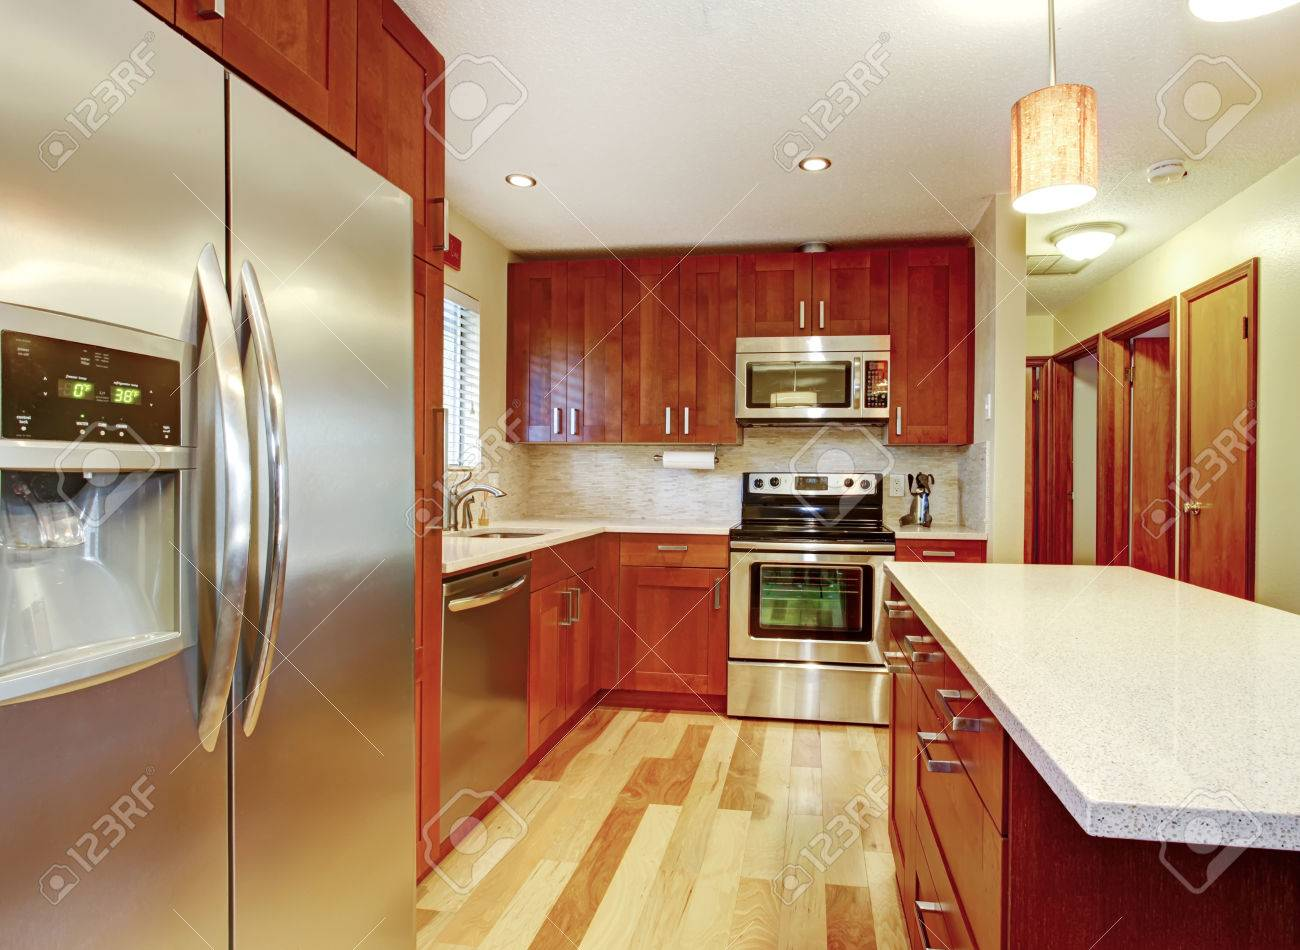 Small Kitchen With Hardwood Floor Cherry Cabinets And Steel Stock Photo Picture And Royalty Free Image Image 26496076